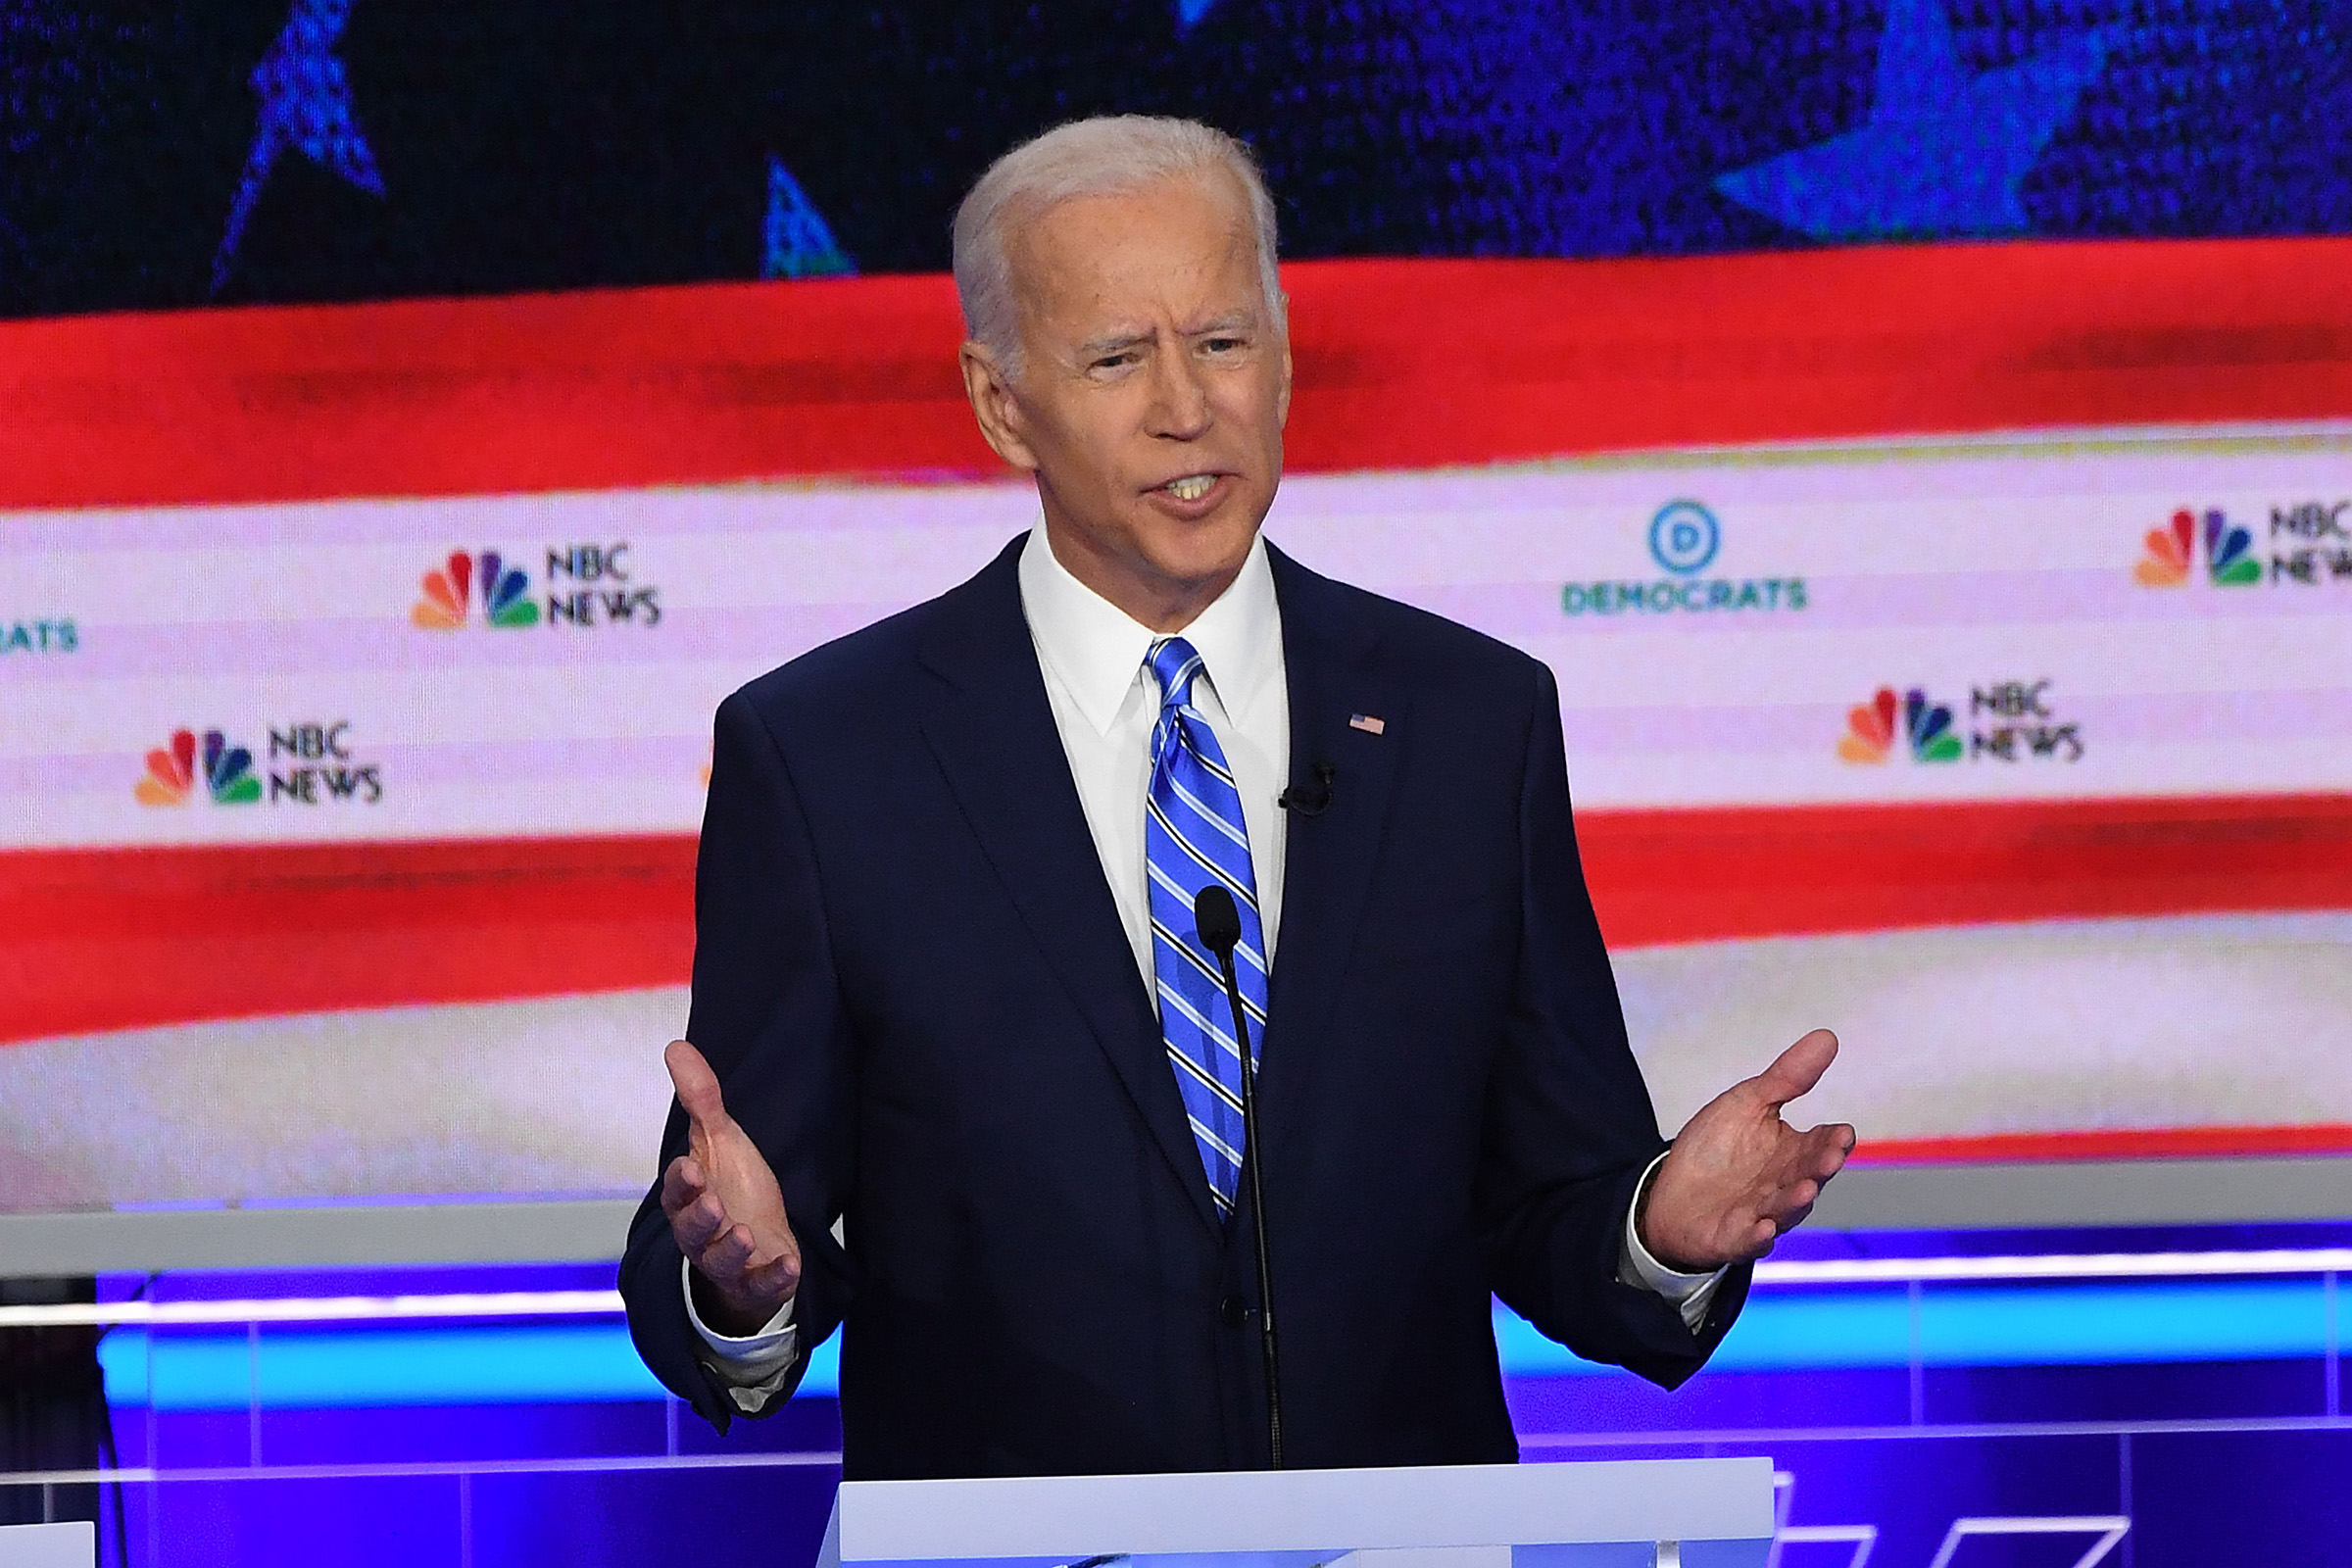 emocratic presidential hopeful former US Vice President Joseph R. Biden speaks during the second Democratic primary debate of the 2020 presidential campaign season hosted by NBC News at the Adrienne Arsht Center for the Performing Arts in Miami, Florida, June 27, 2019.